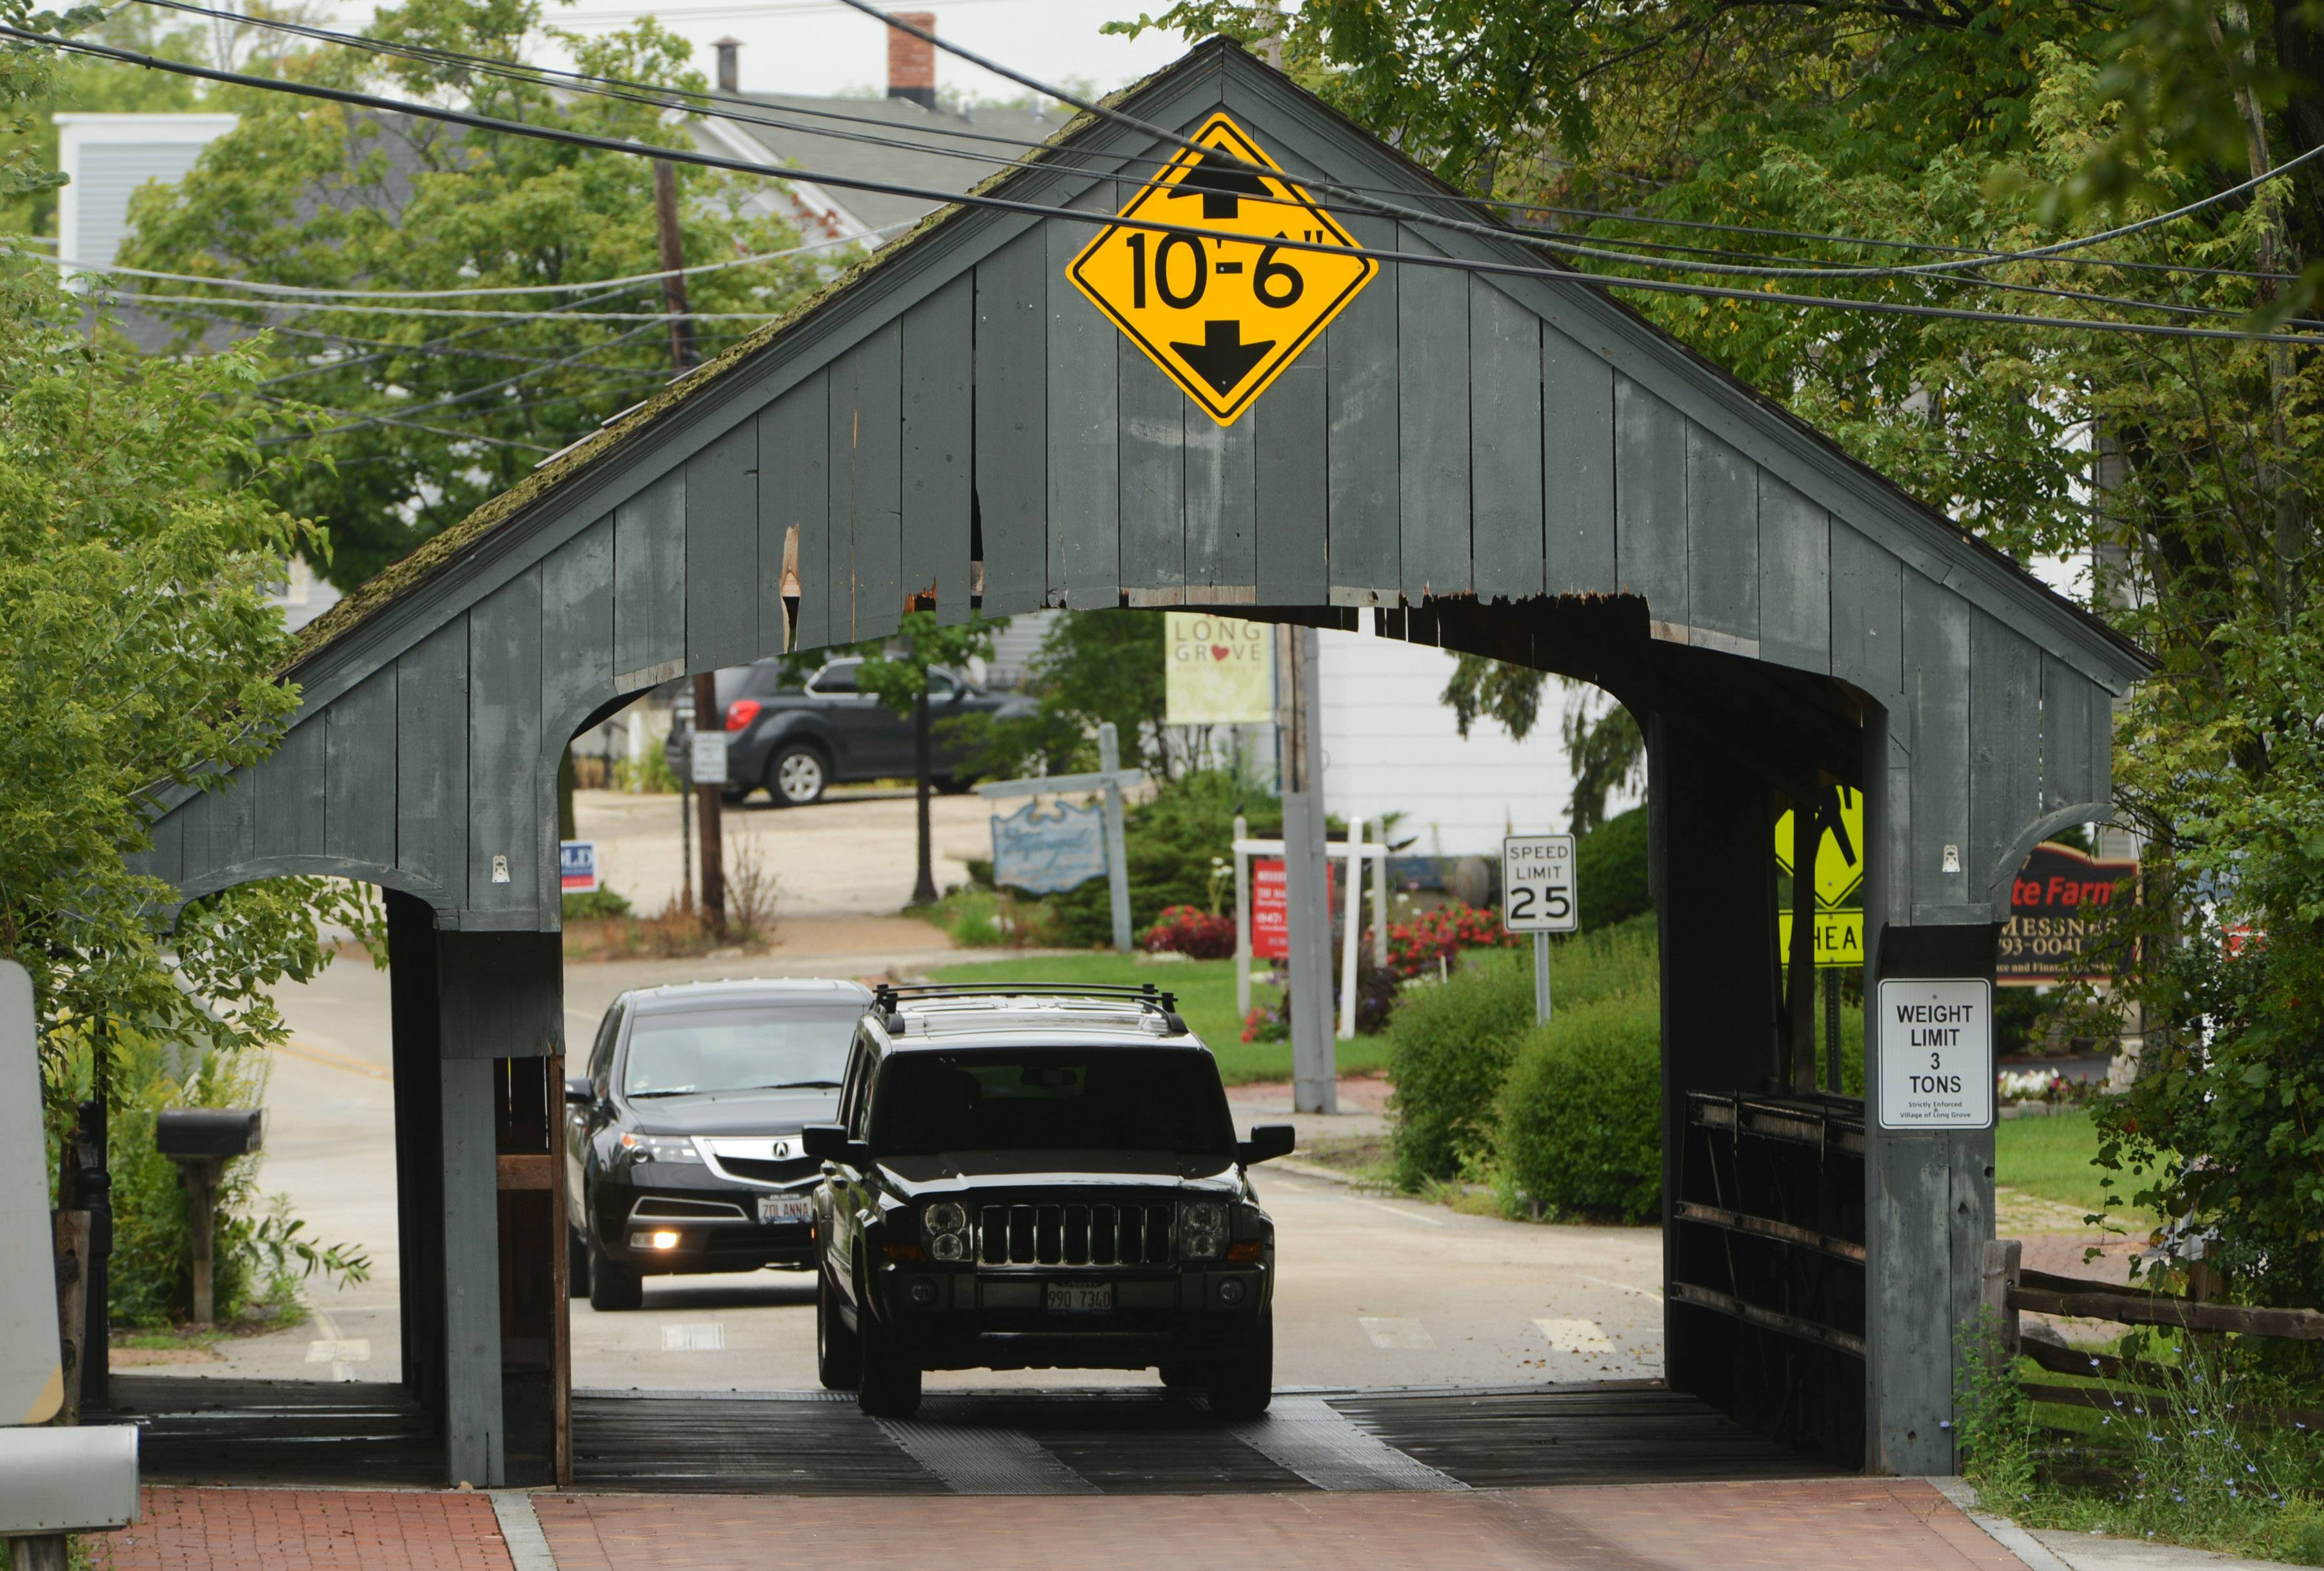 About 150 supporters of Long Grove's covered bridge attended a village board meeting Tuesday night. The session was moved from village hall to Long Grove Community Church's community house to accommodate the turnout. The bridge's future has been an issue because of its poor condition cited about three years ago.